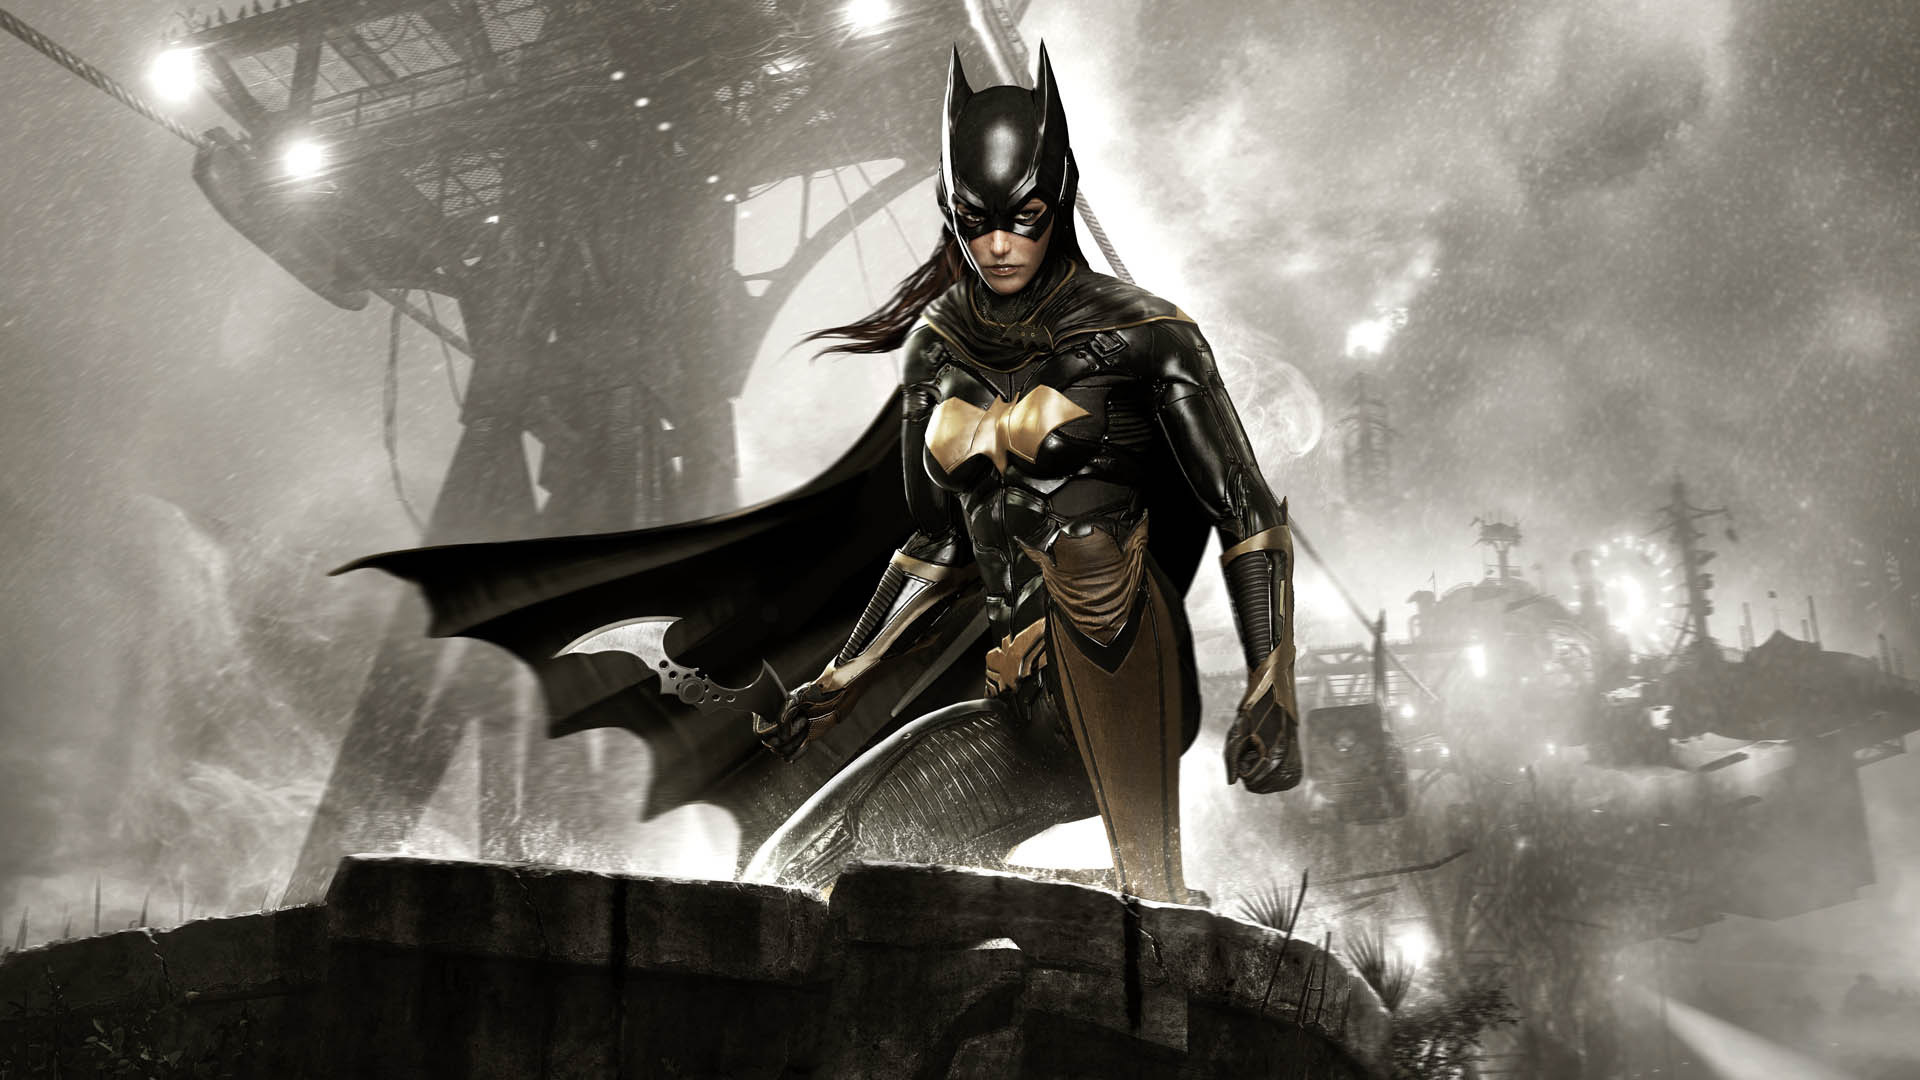 Batman Arkham Knight Batgirl 1920x1080